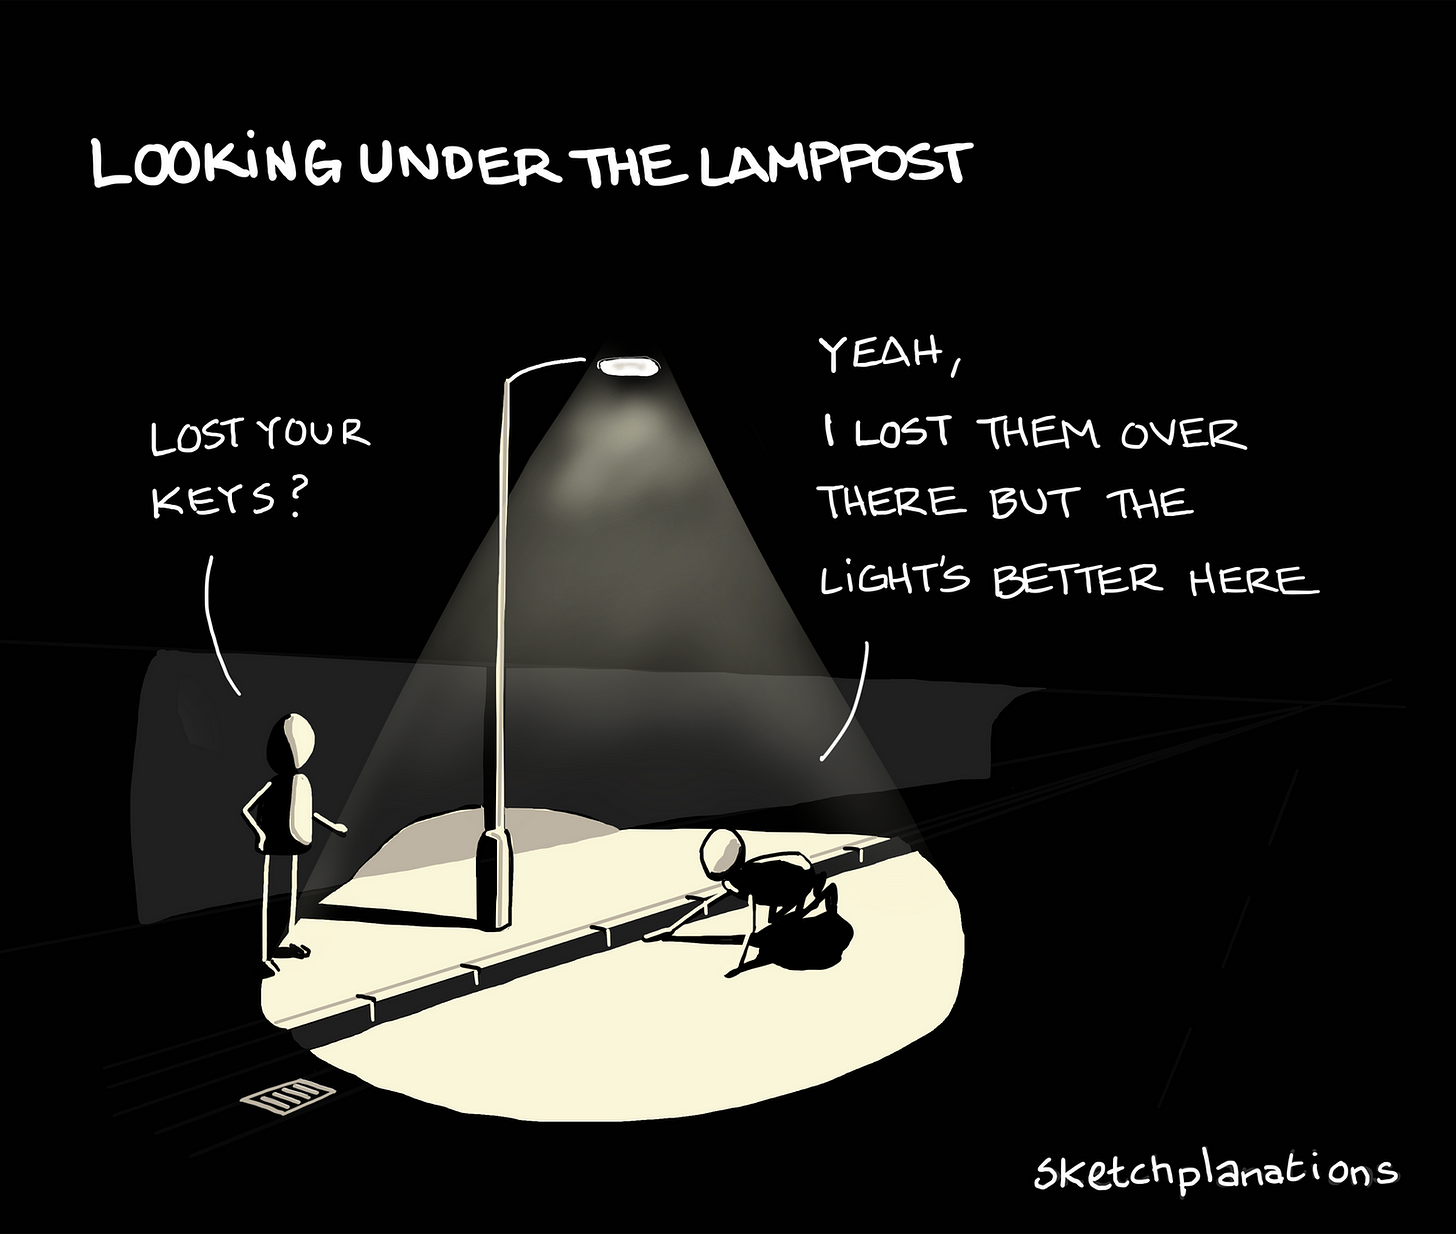 Looking under the lamppost - Sketchplanations